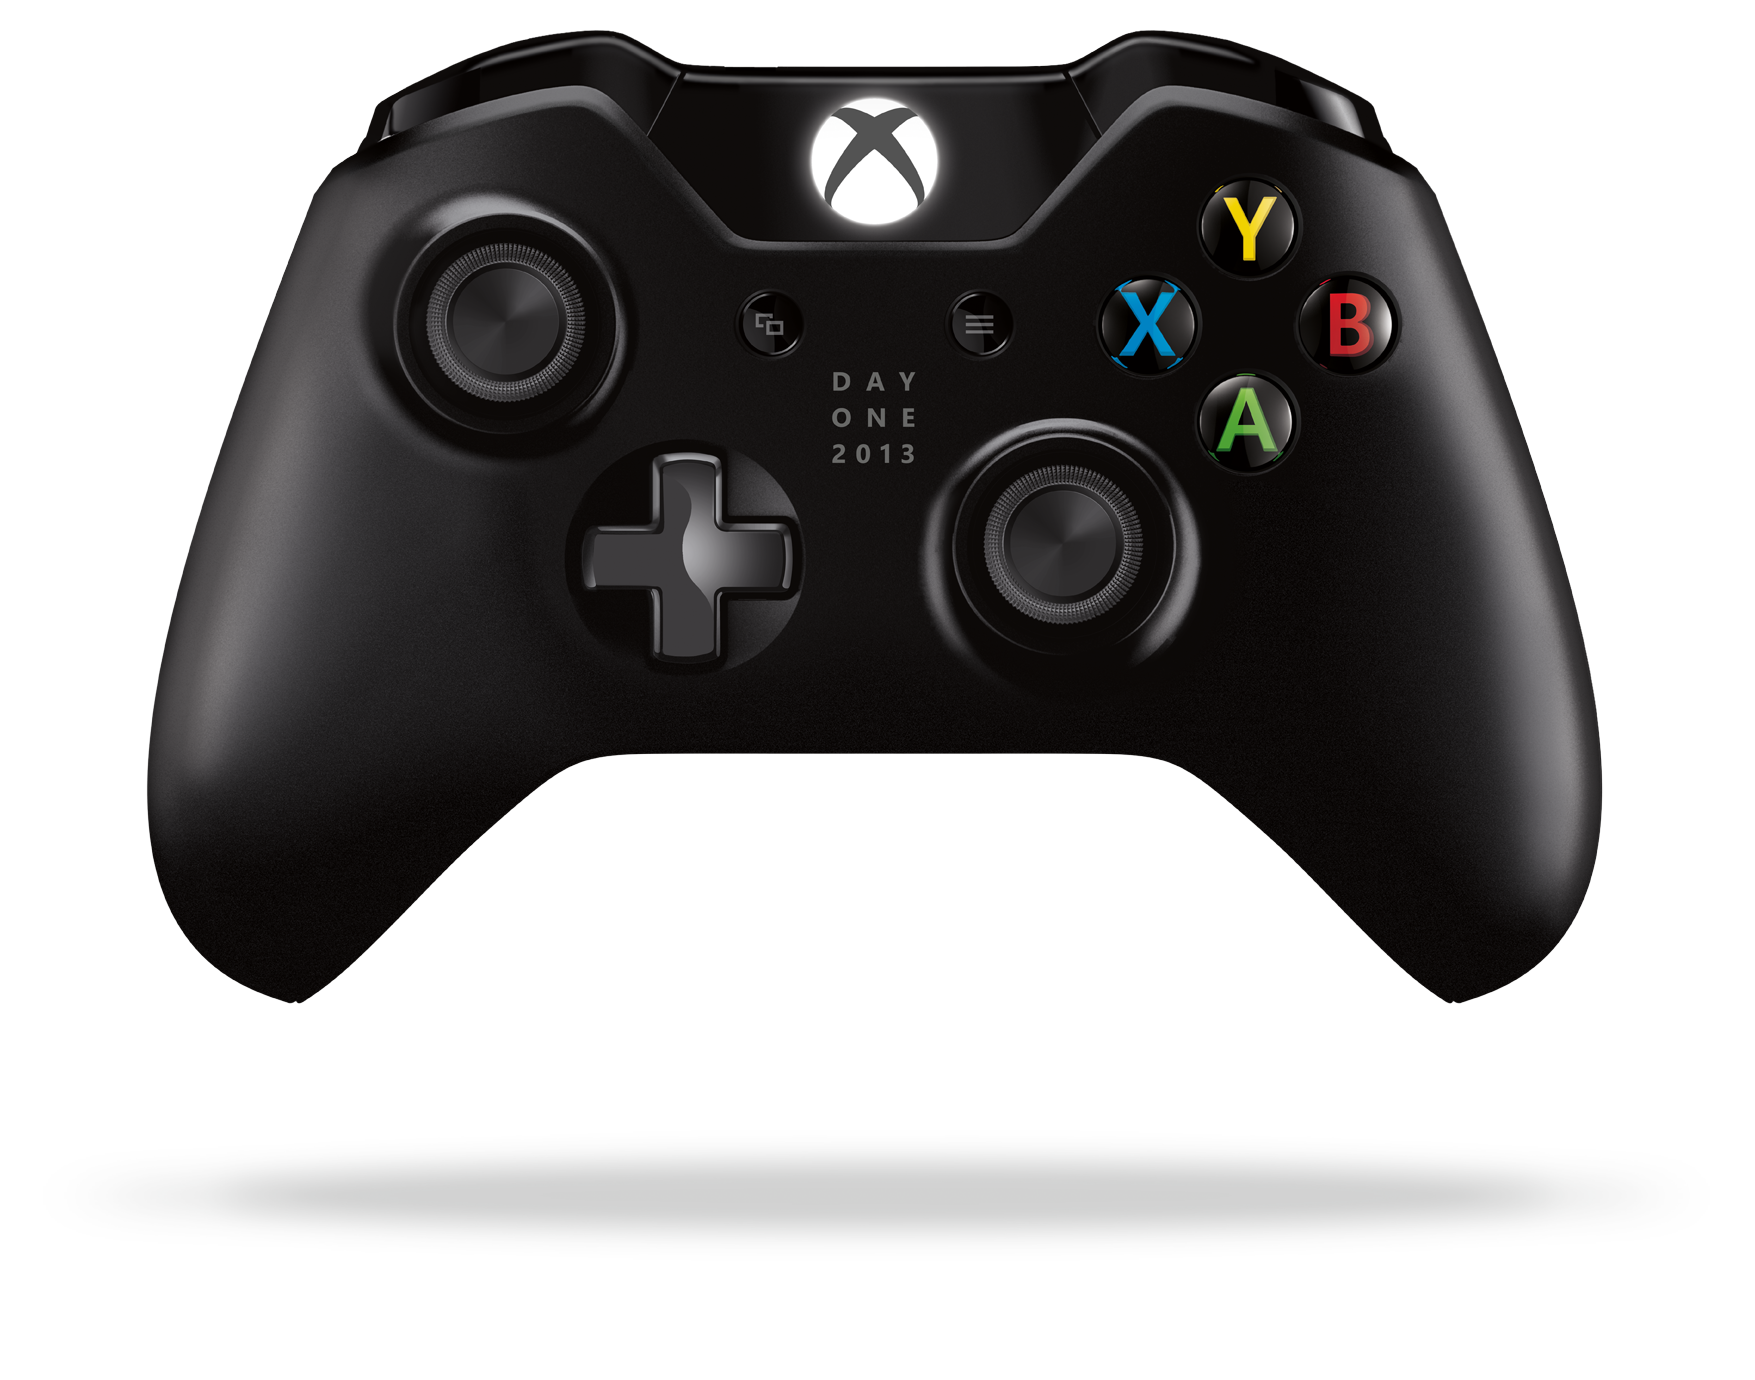 Xbox One Controller: What You Need to Know